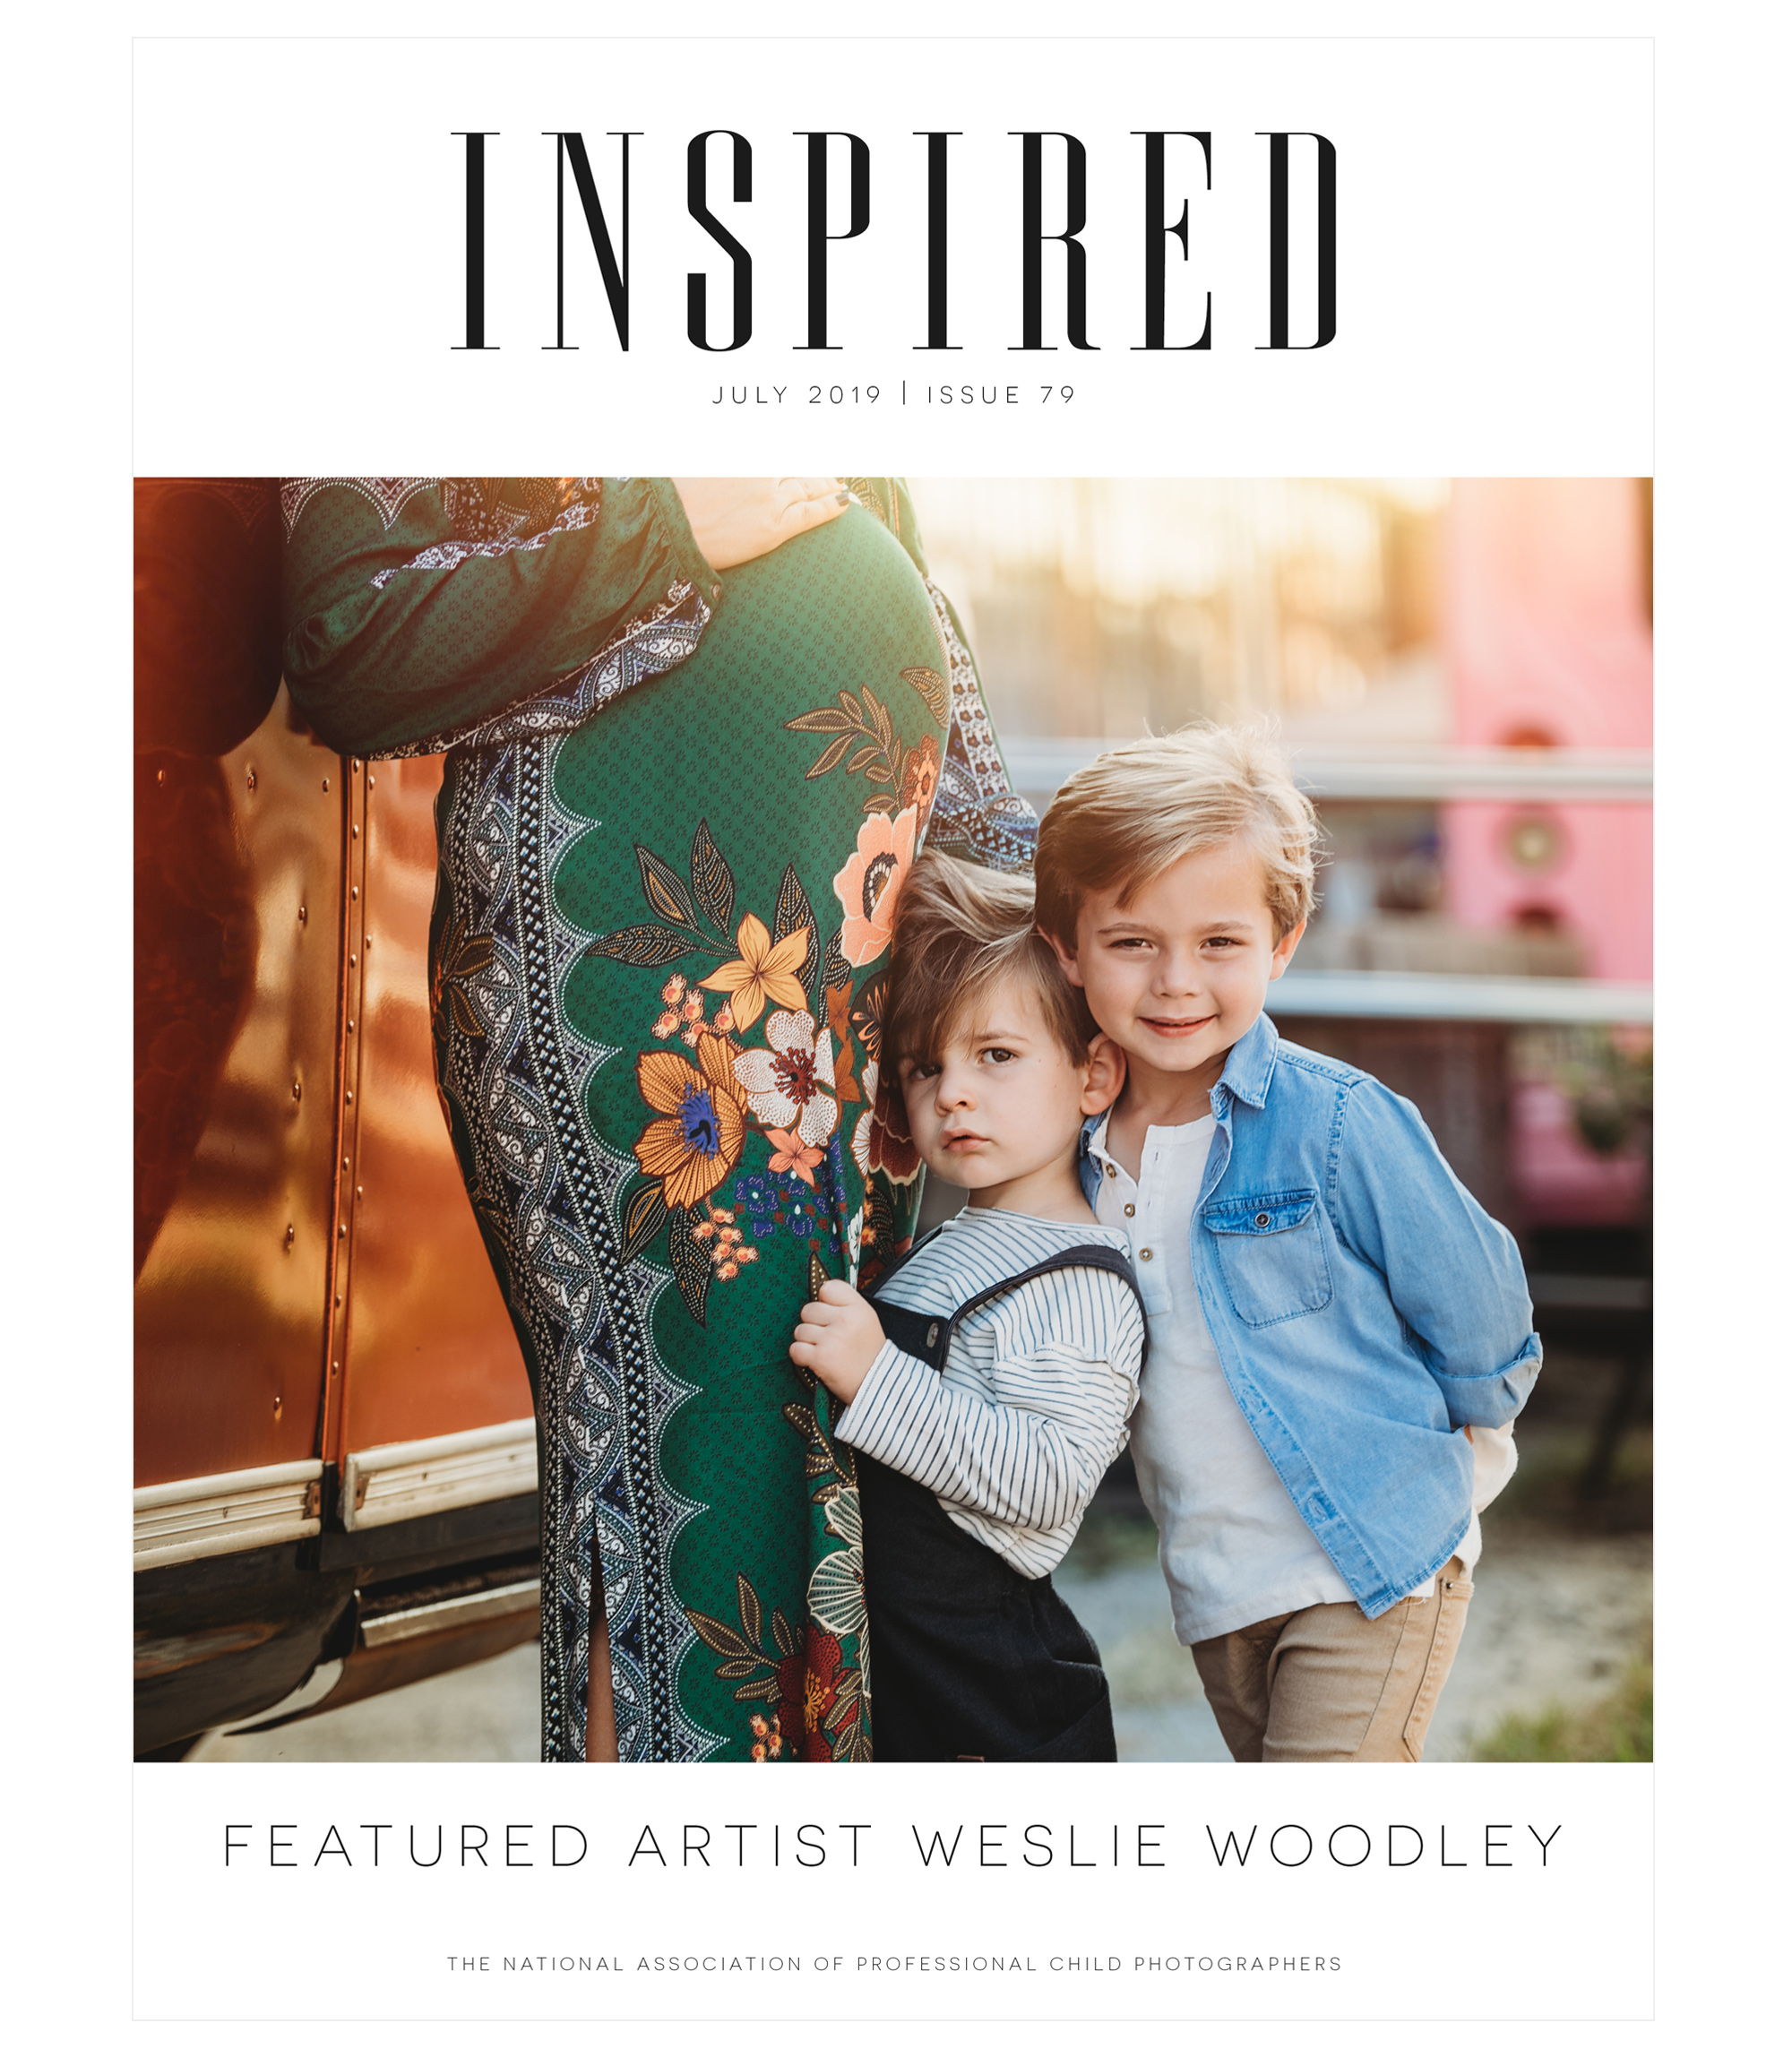 Inspired magazine July 2019 Issue 79 cover, featured artist Weslie Woodley